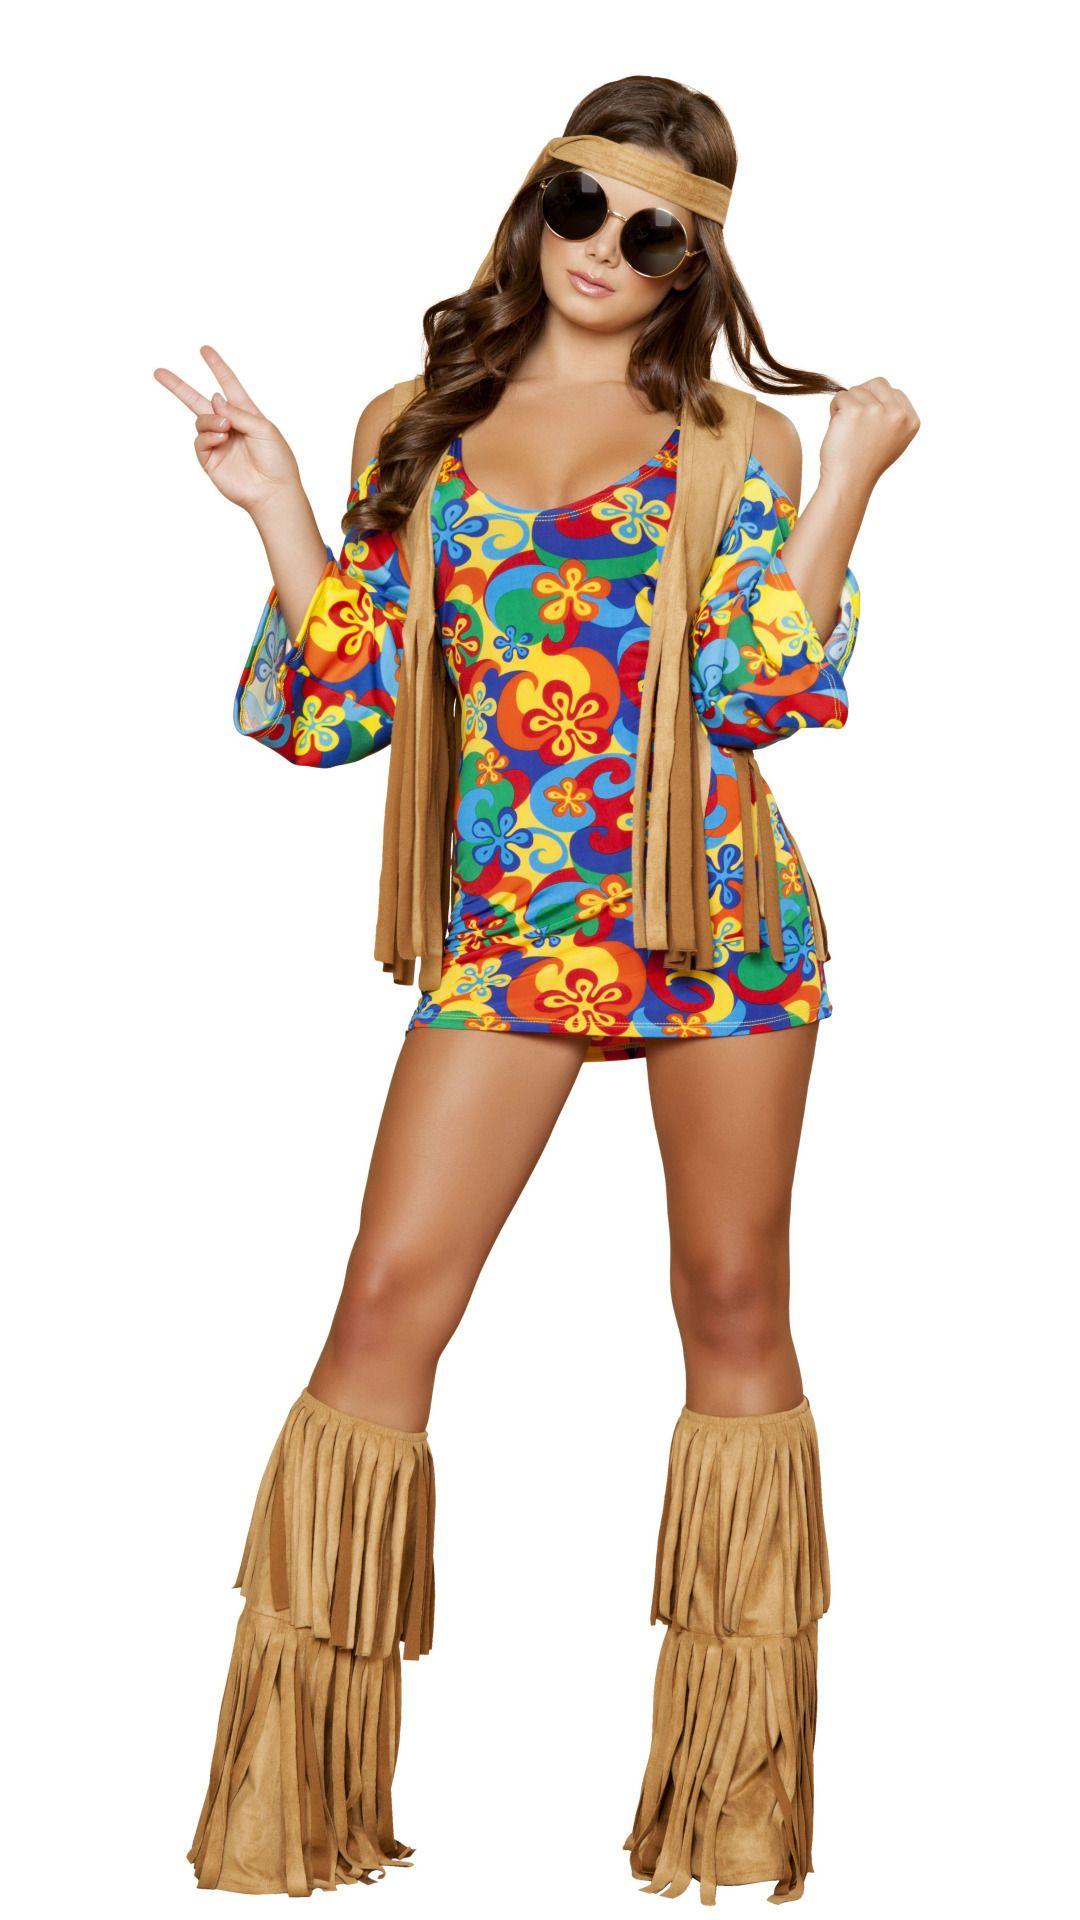 hippie costume pcs click picture twice to see details  pricing halloween sexycostume thesexiestlingerie also rh pinterest